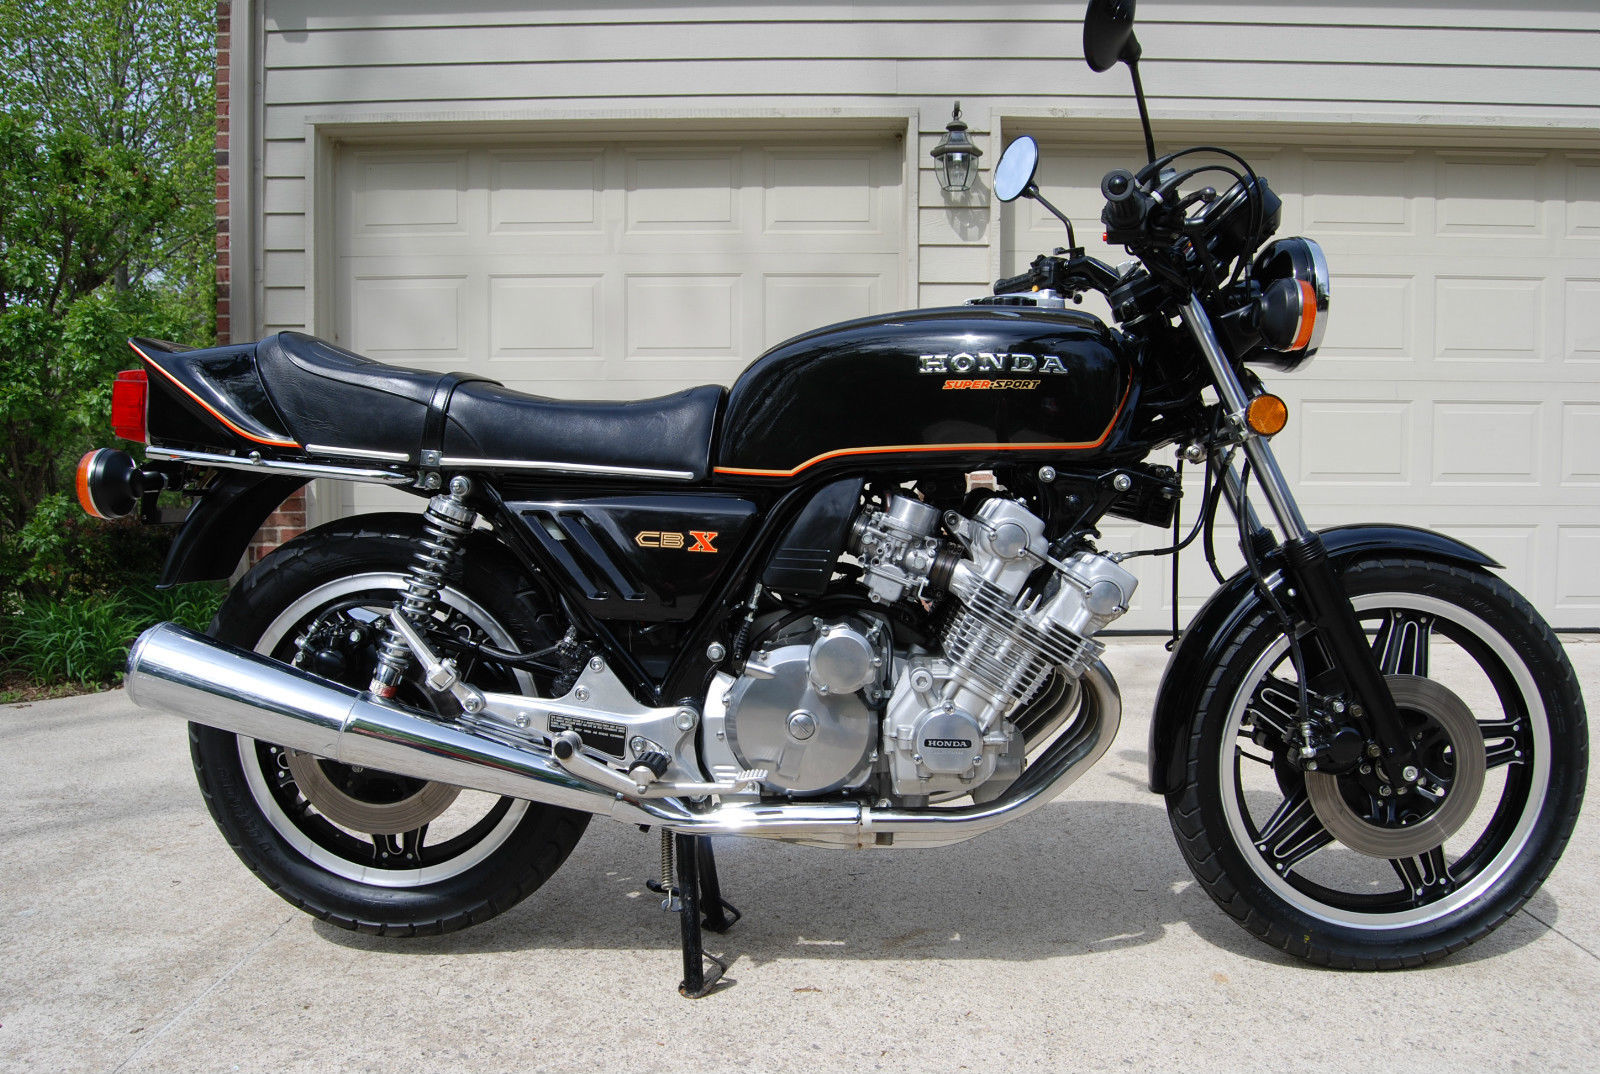 1980 honda cbx 1000 with just 4400 miles in michigan rare sportbikes for sale. Black Bedroom Furniture Sets. Home Design Ideas